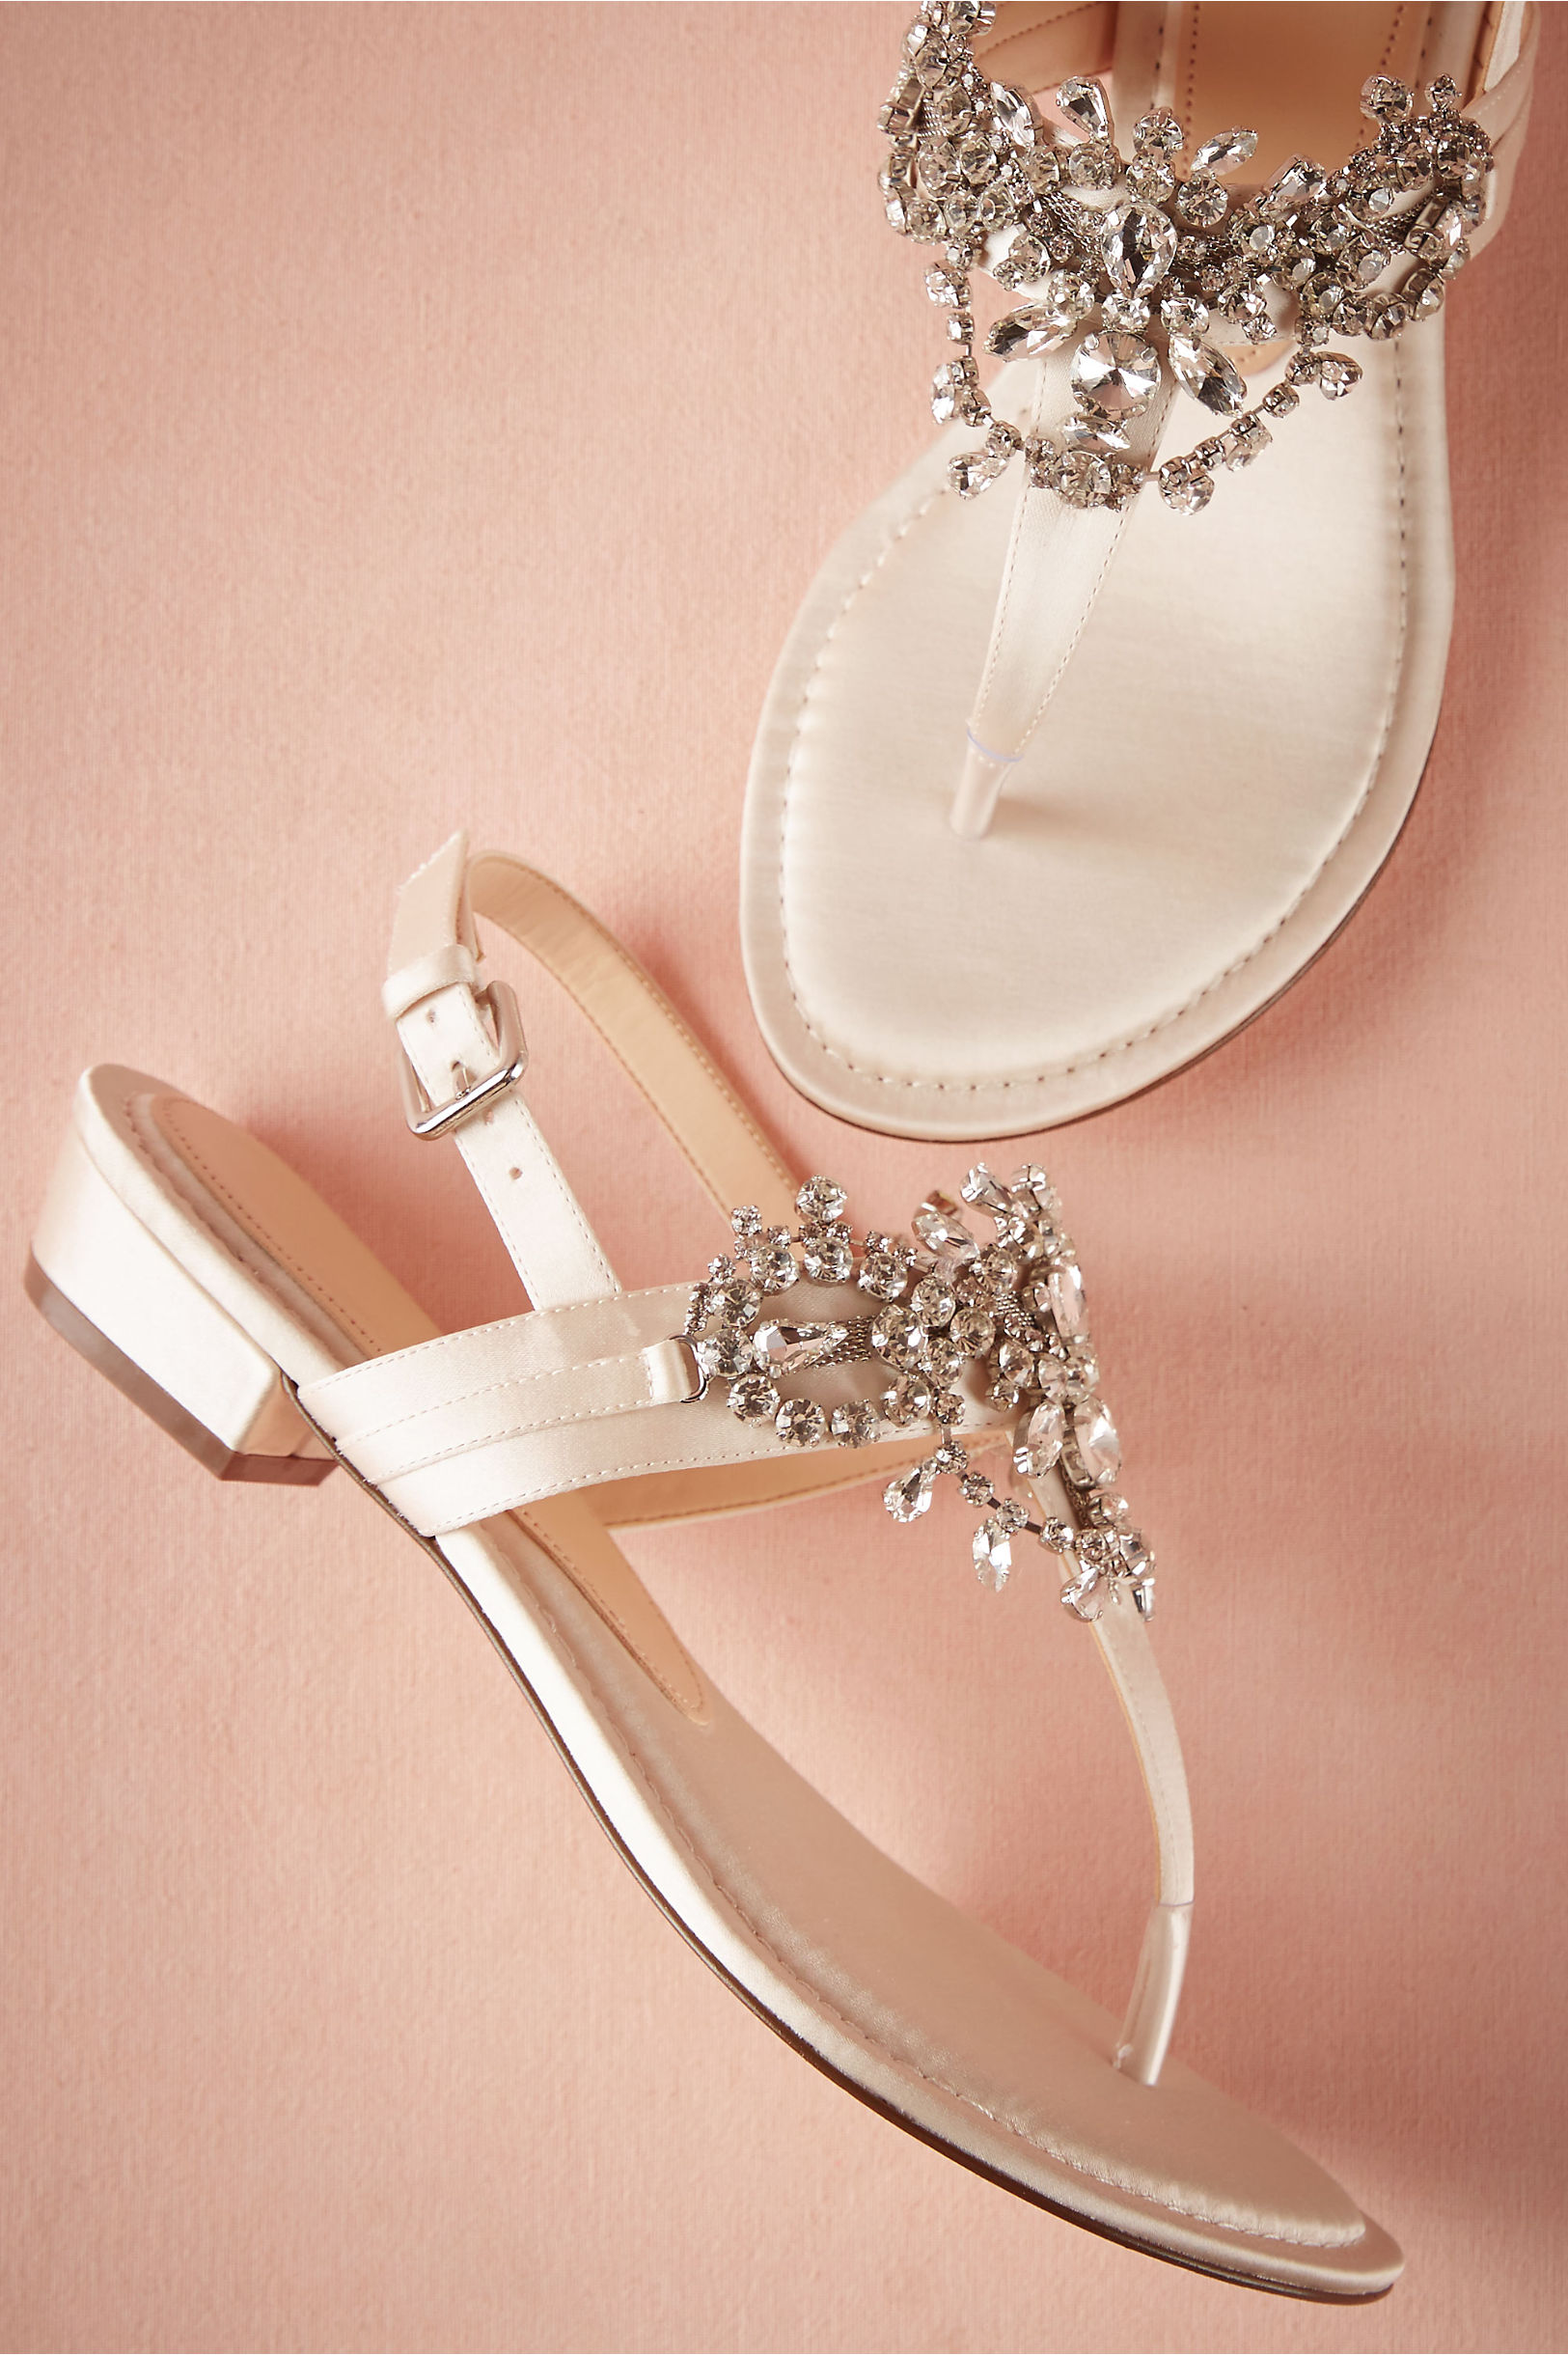 Sandals honeymoon shoes with rhinestone - Hitherto Ivory Crystal Pool Sandals Bhldn